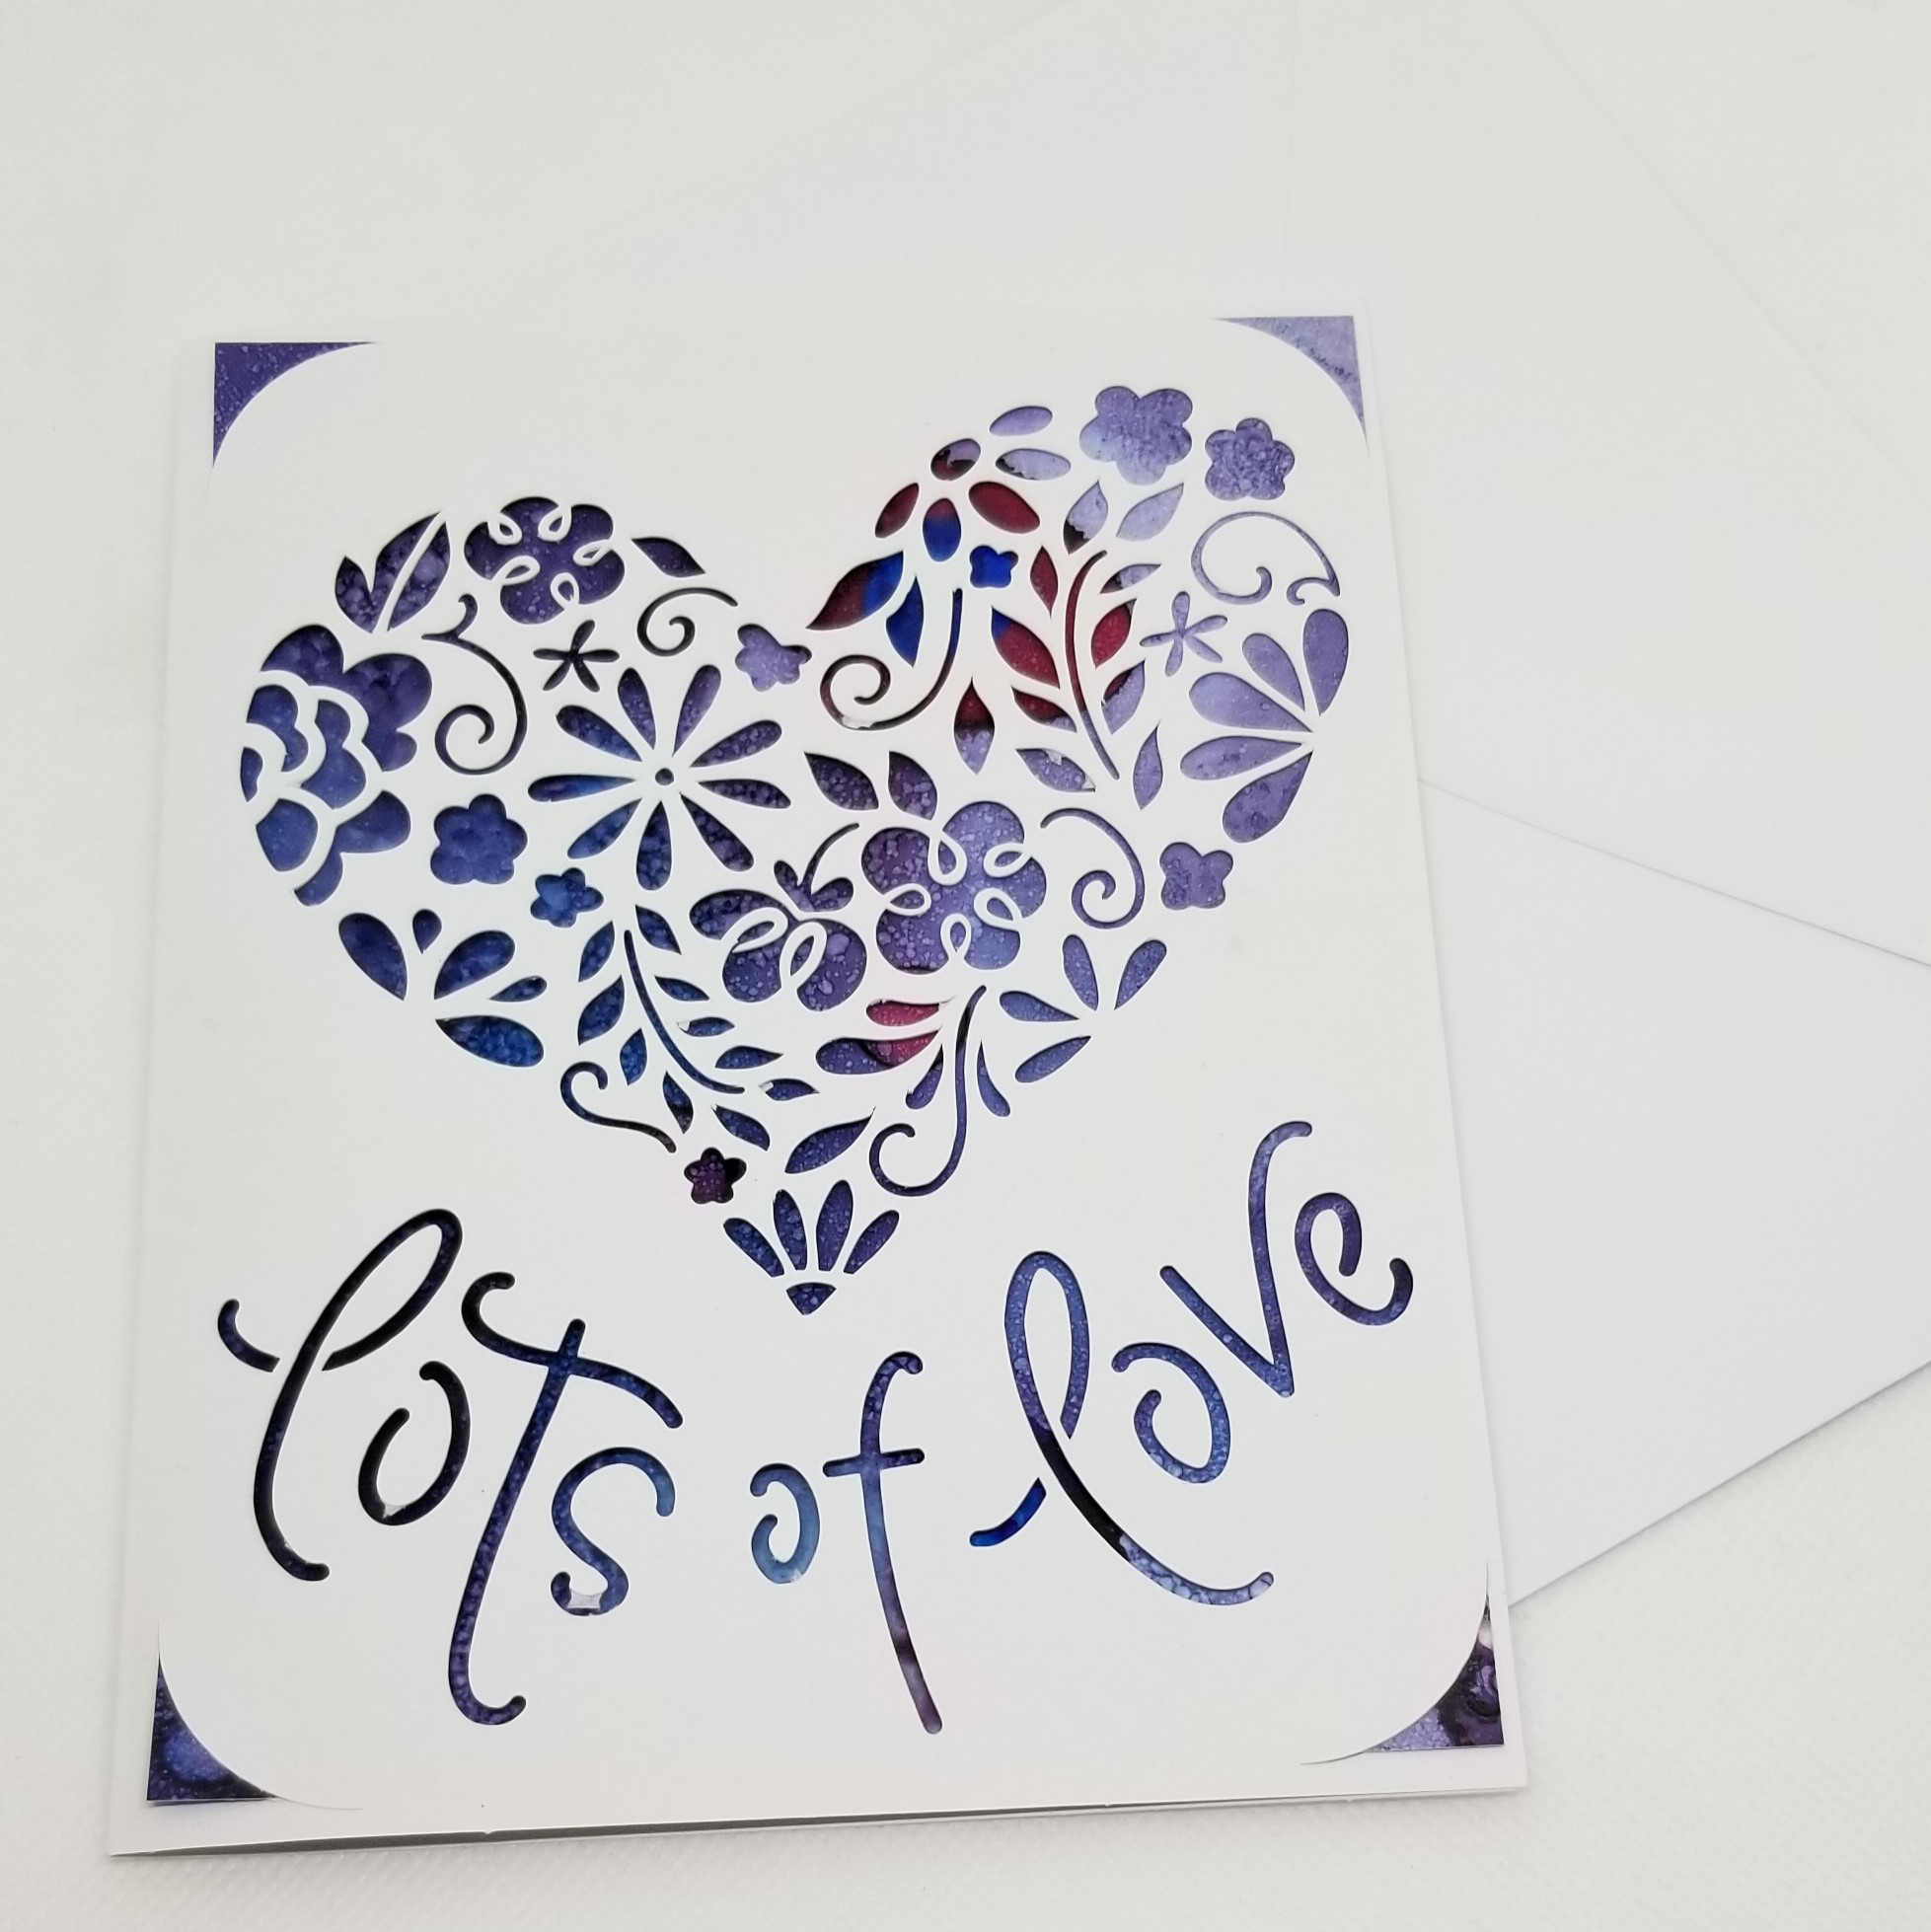 Painted, Cutout Valentine's Card